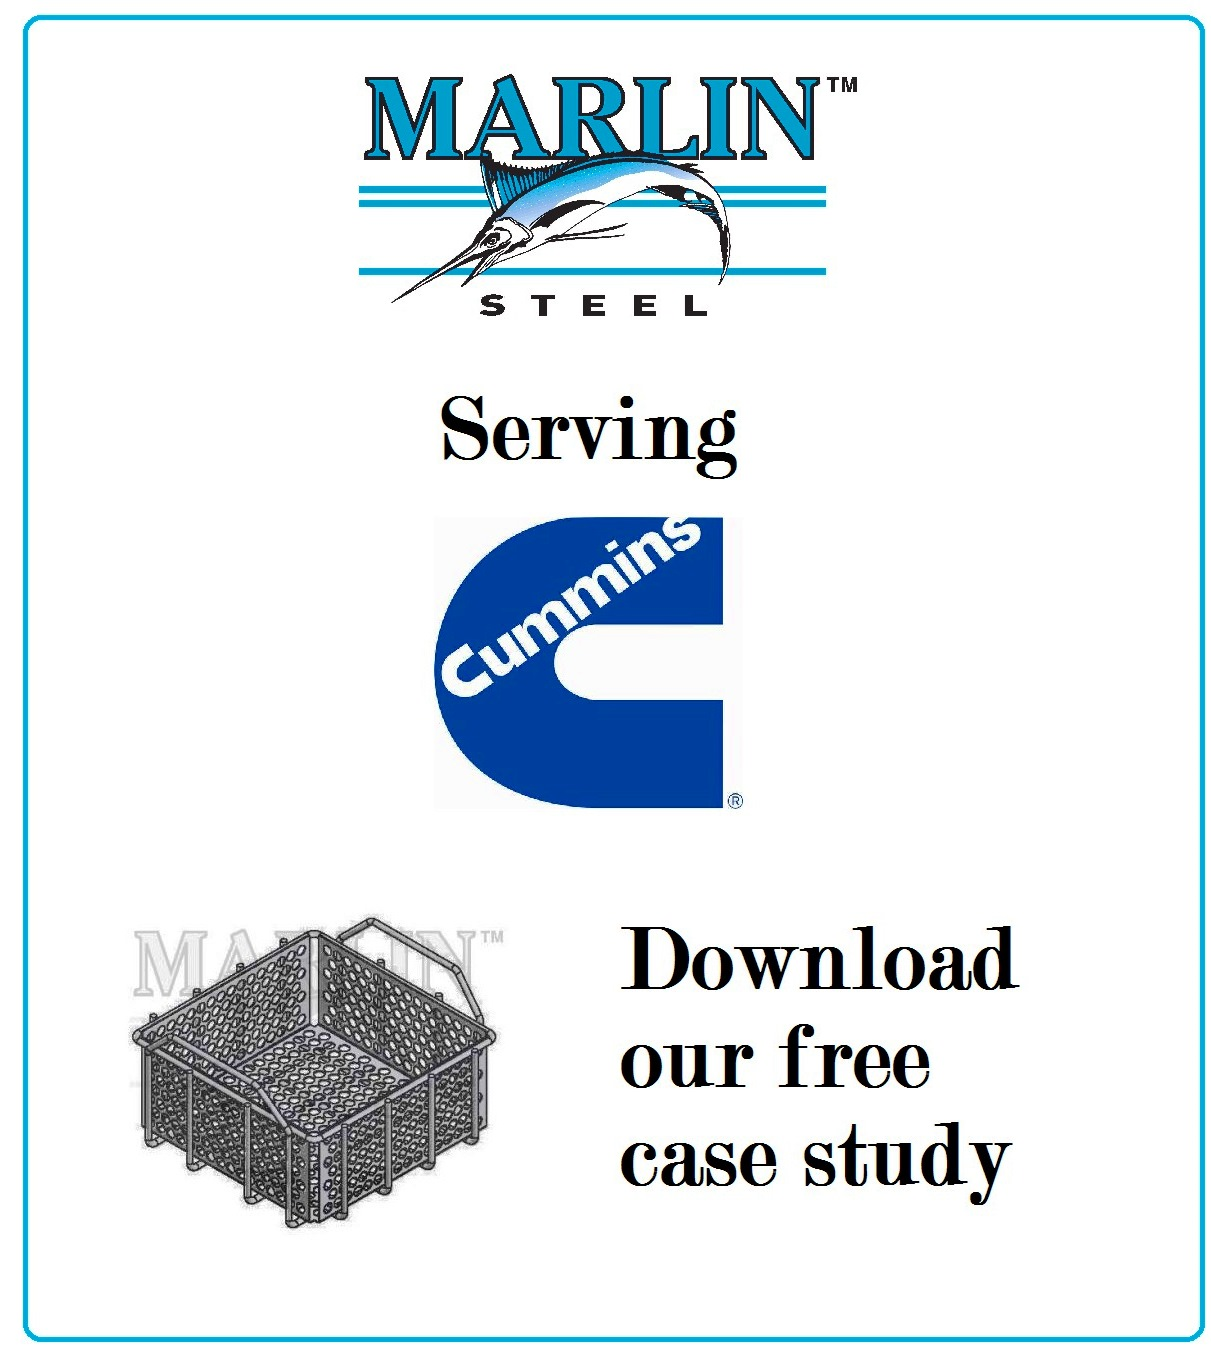 A Marlin Steel Case Study: Baskets for Cummins